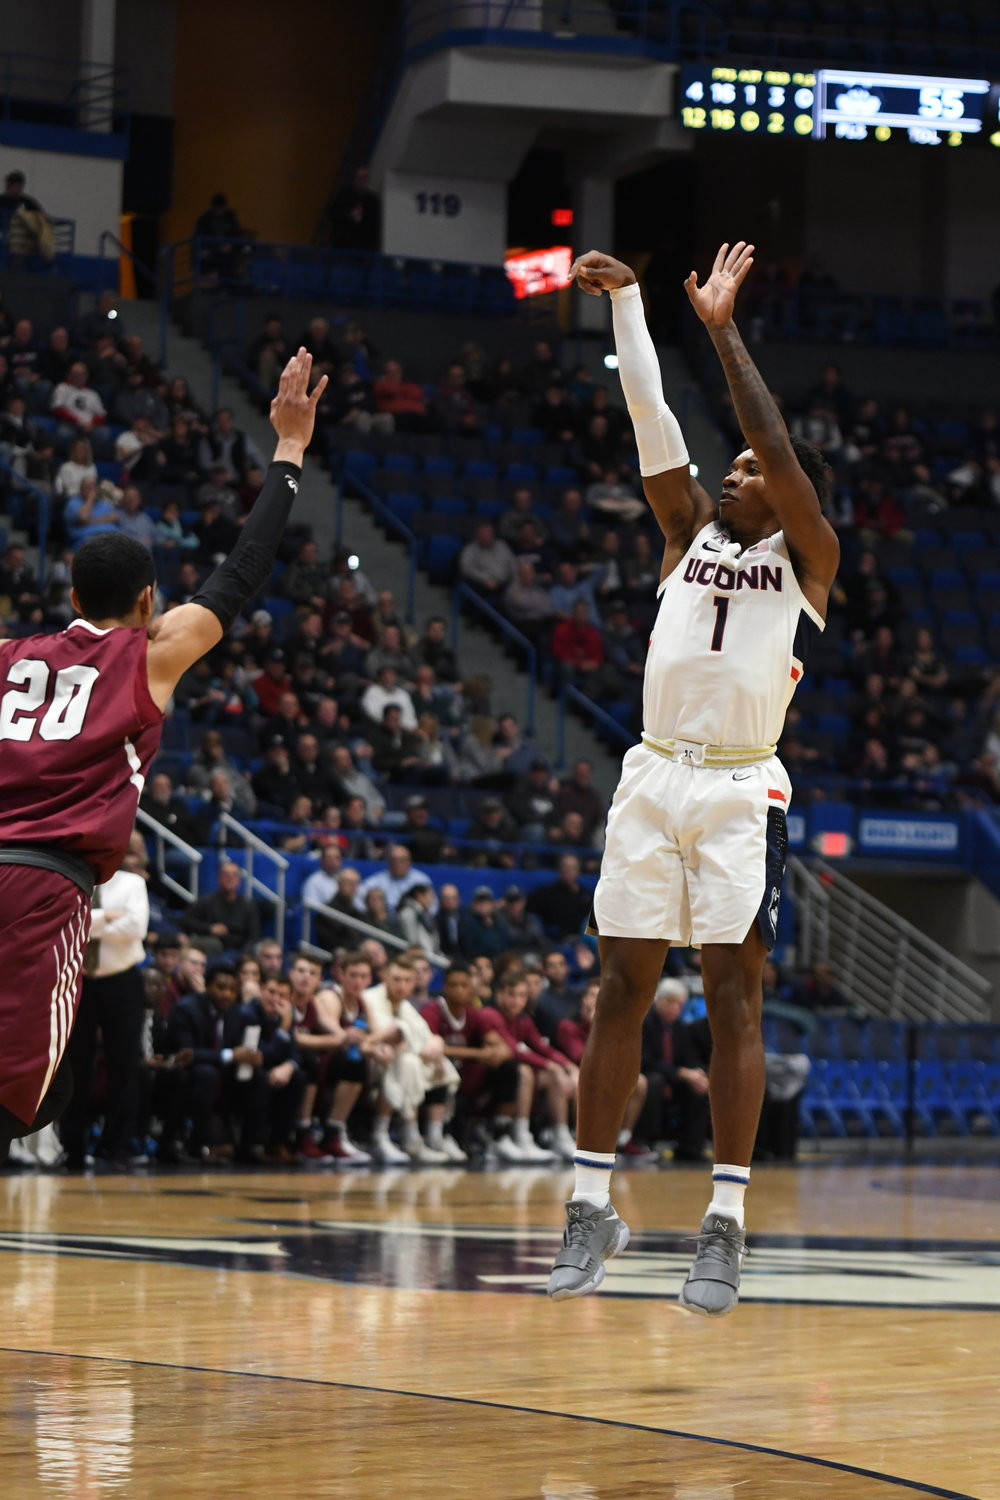 Christian Vital attempts a 3-pointer. The Huskies demolished Lafayette 90-63 in the XL Center to improve to 7-2. Photo by Eric Wang, Staff Photographer/The Daily Campus